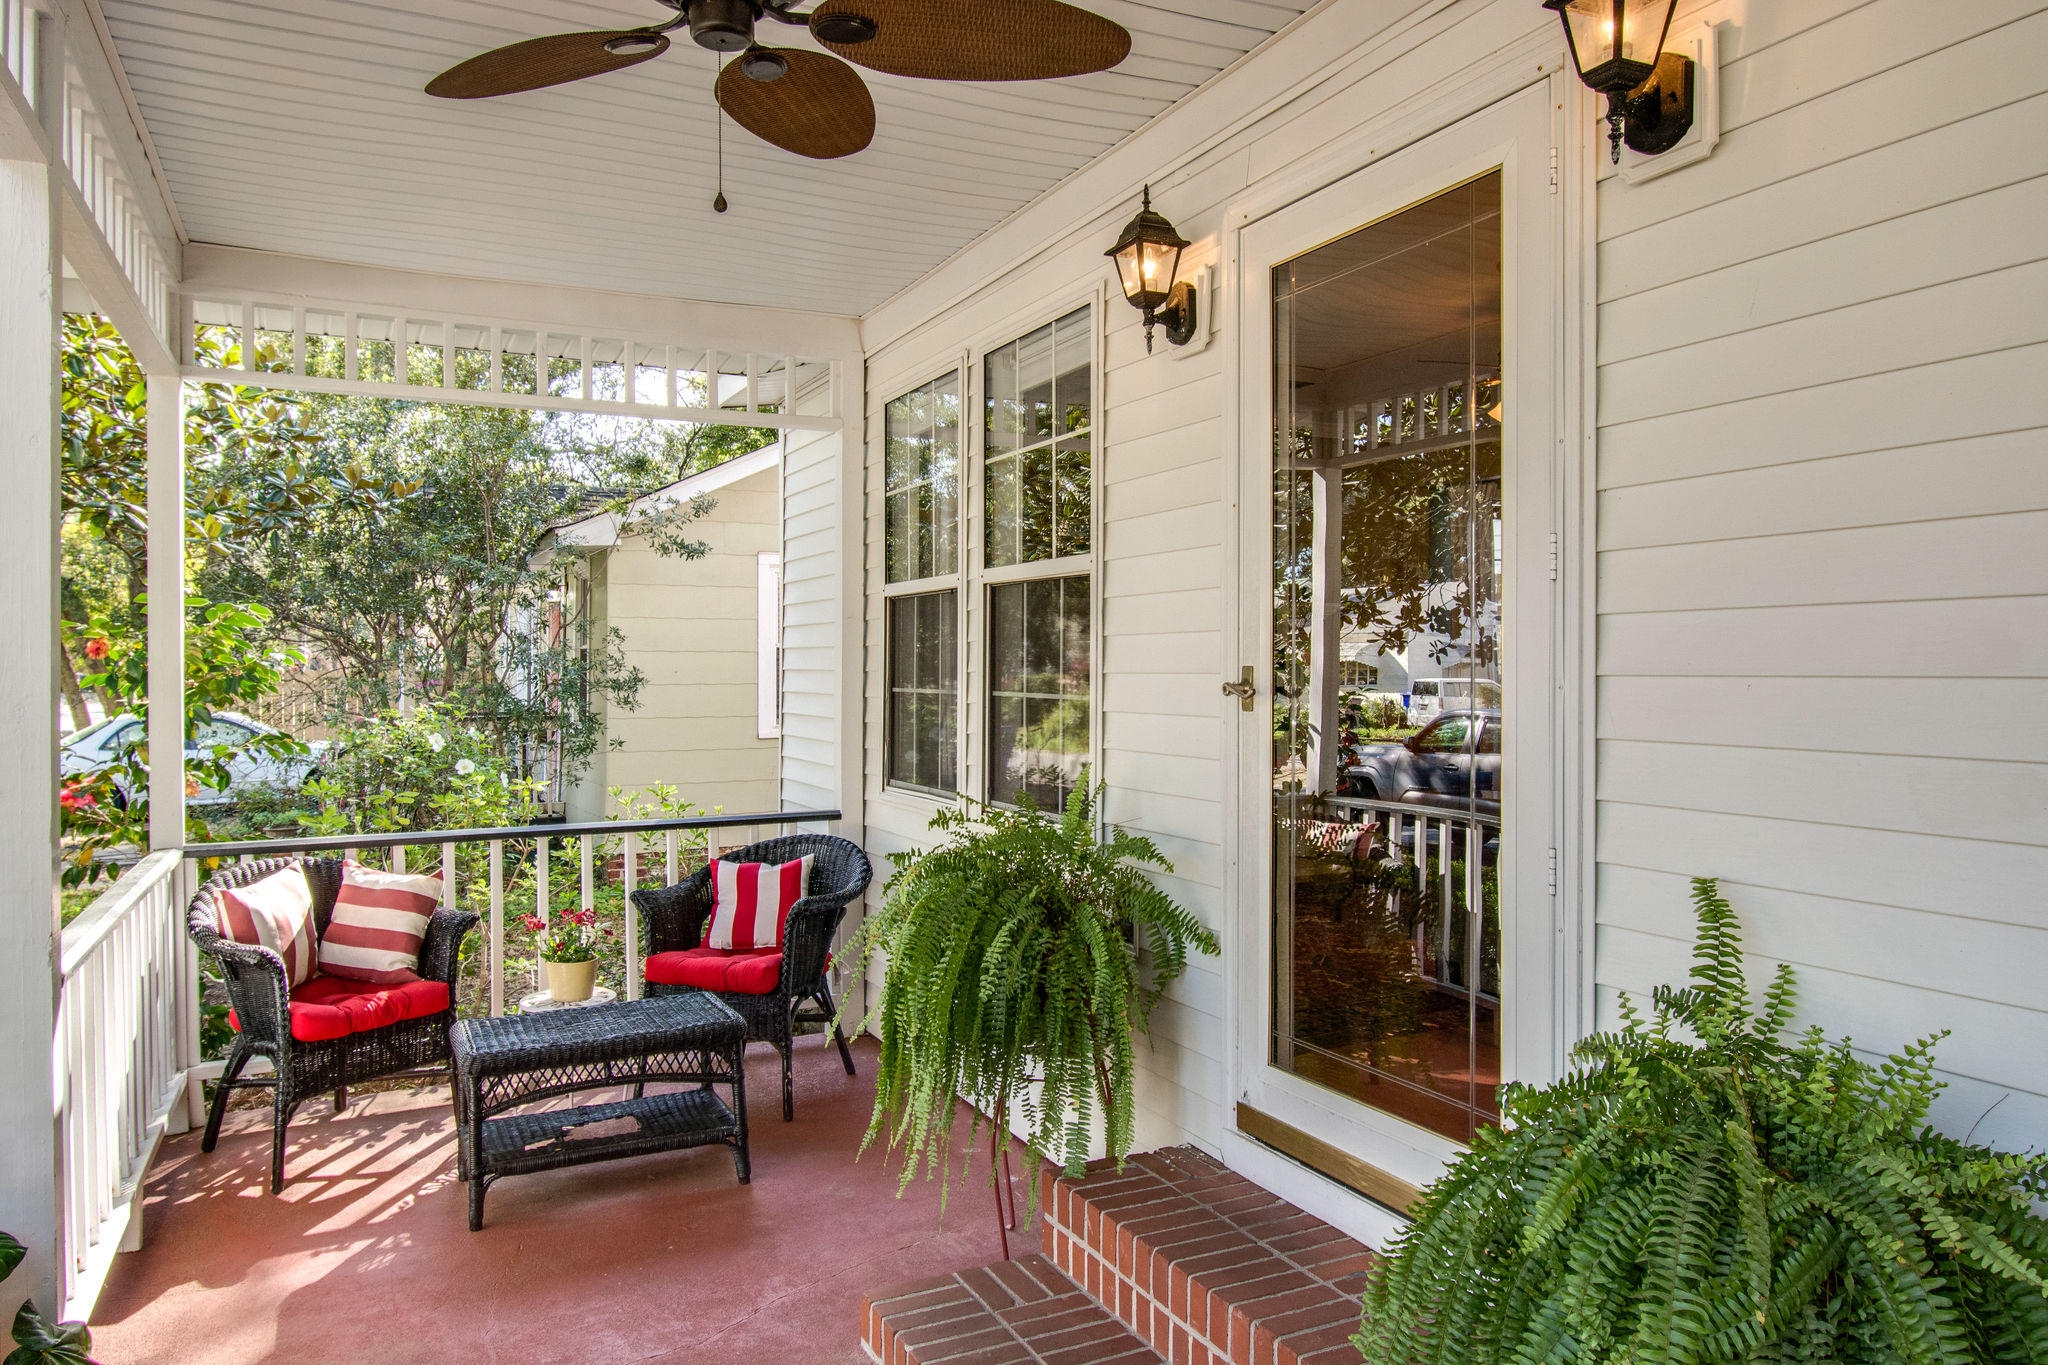 Riverland Terrace Homes For Sale - 2153 Welch, Charleston, SC - 36